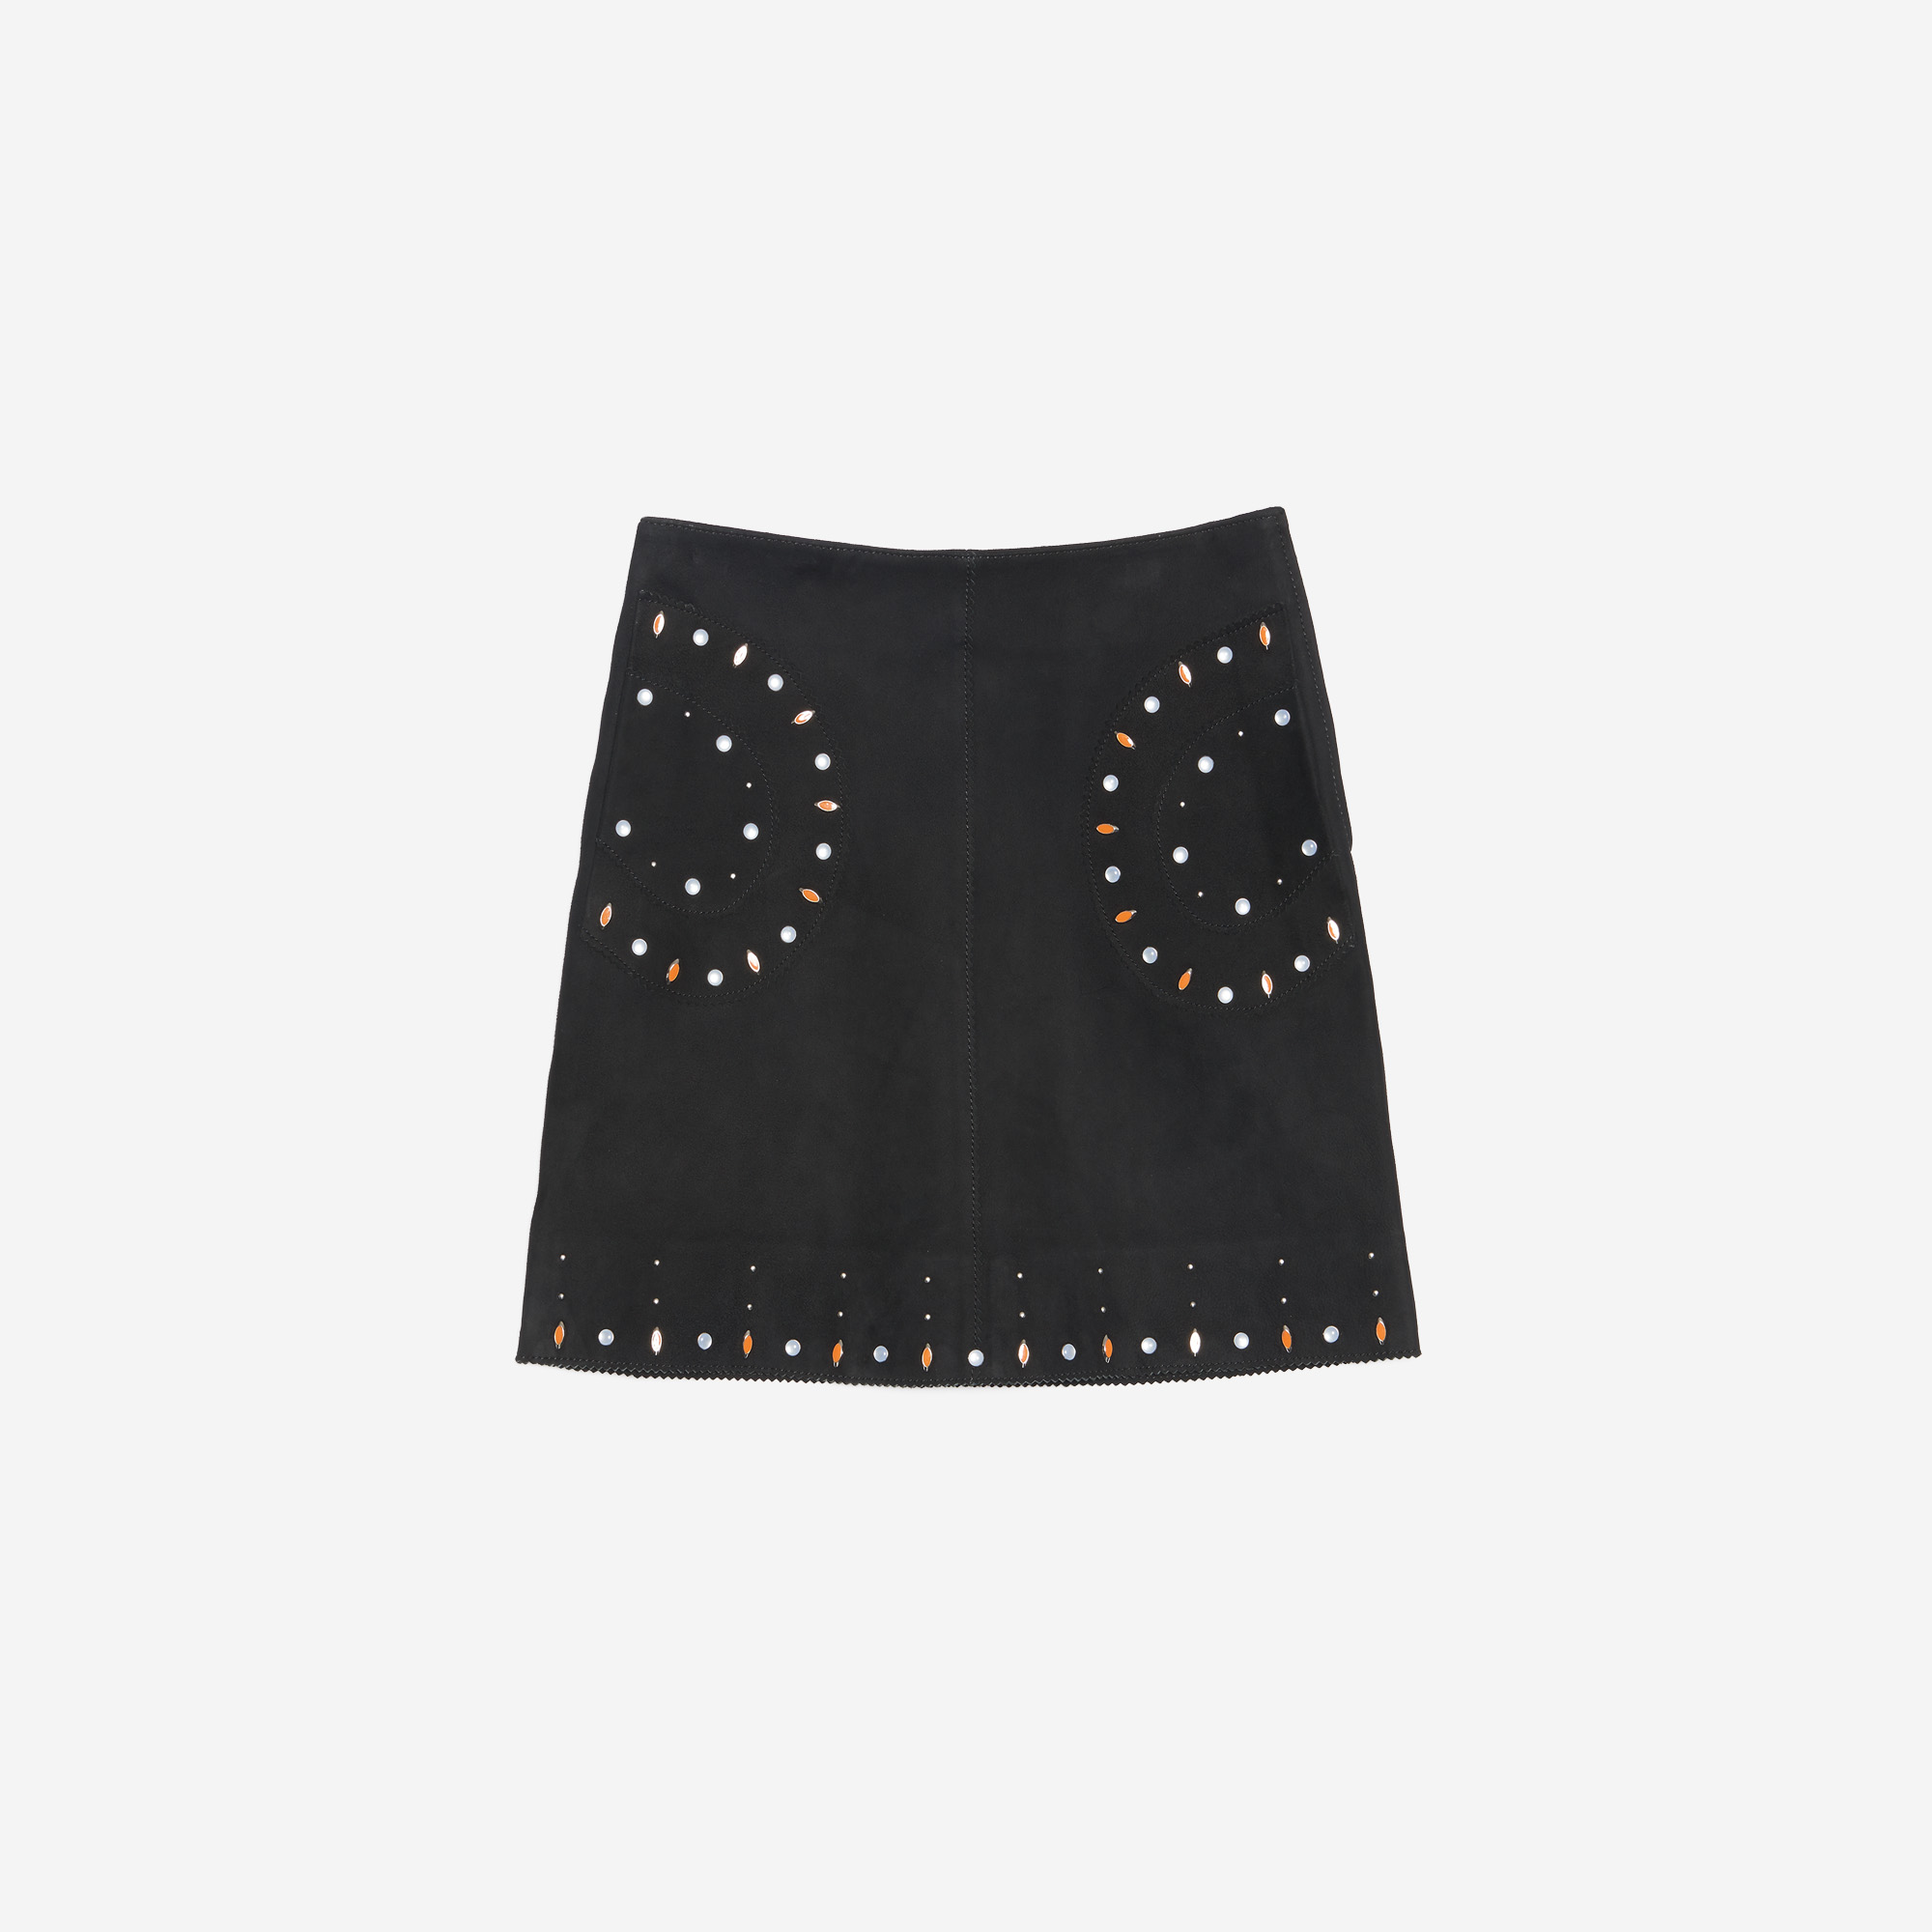 leather skirt with inlaid stones all selection